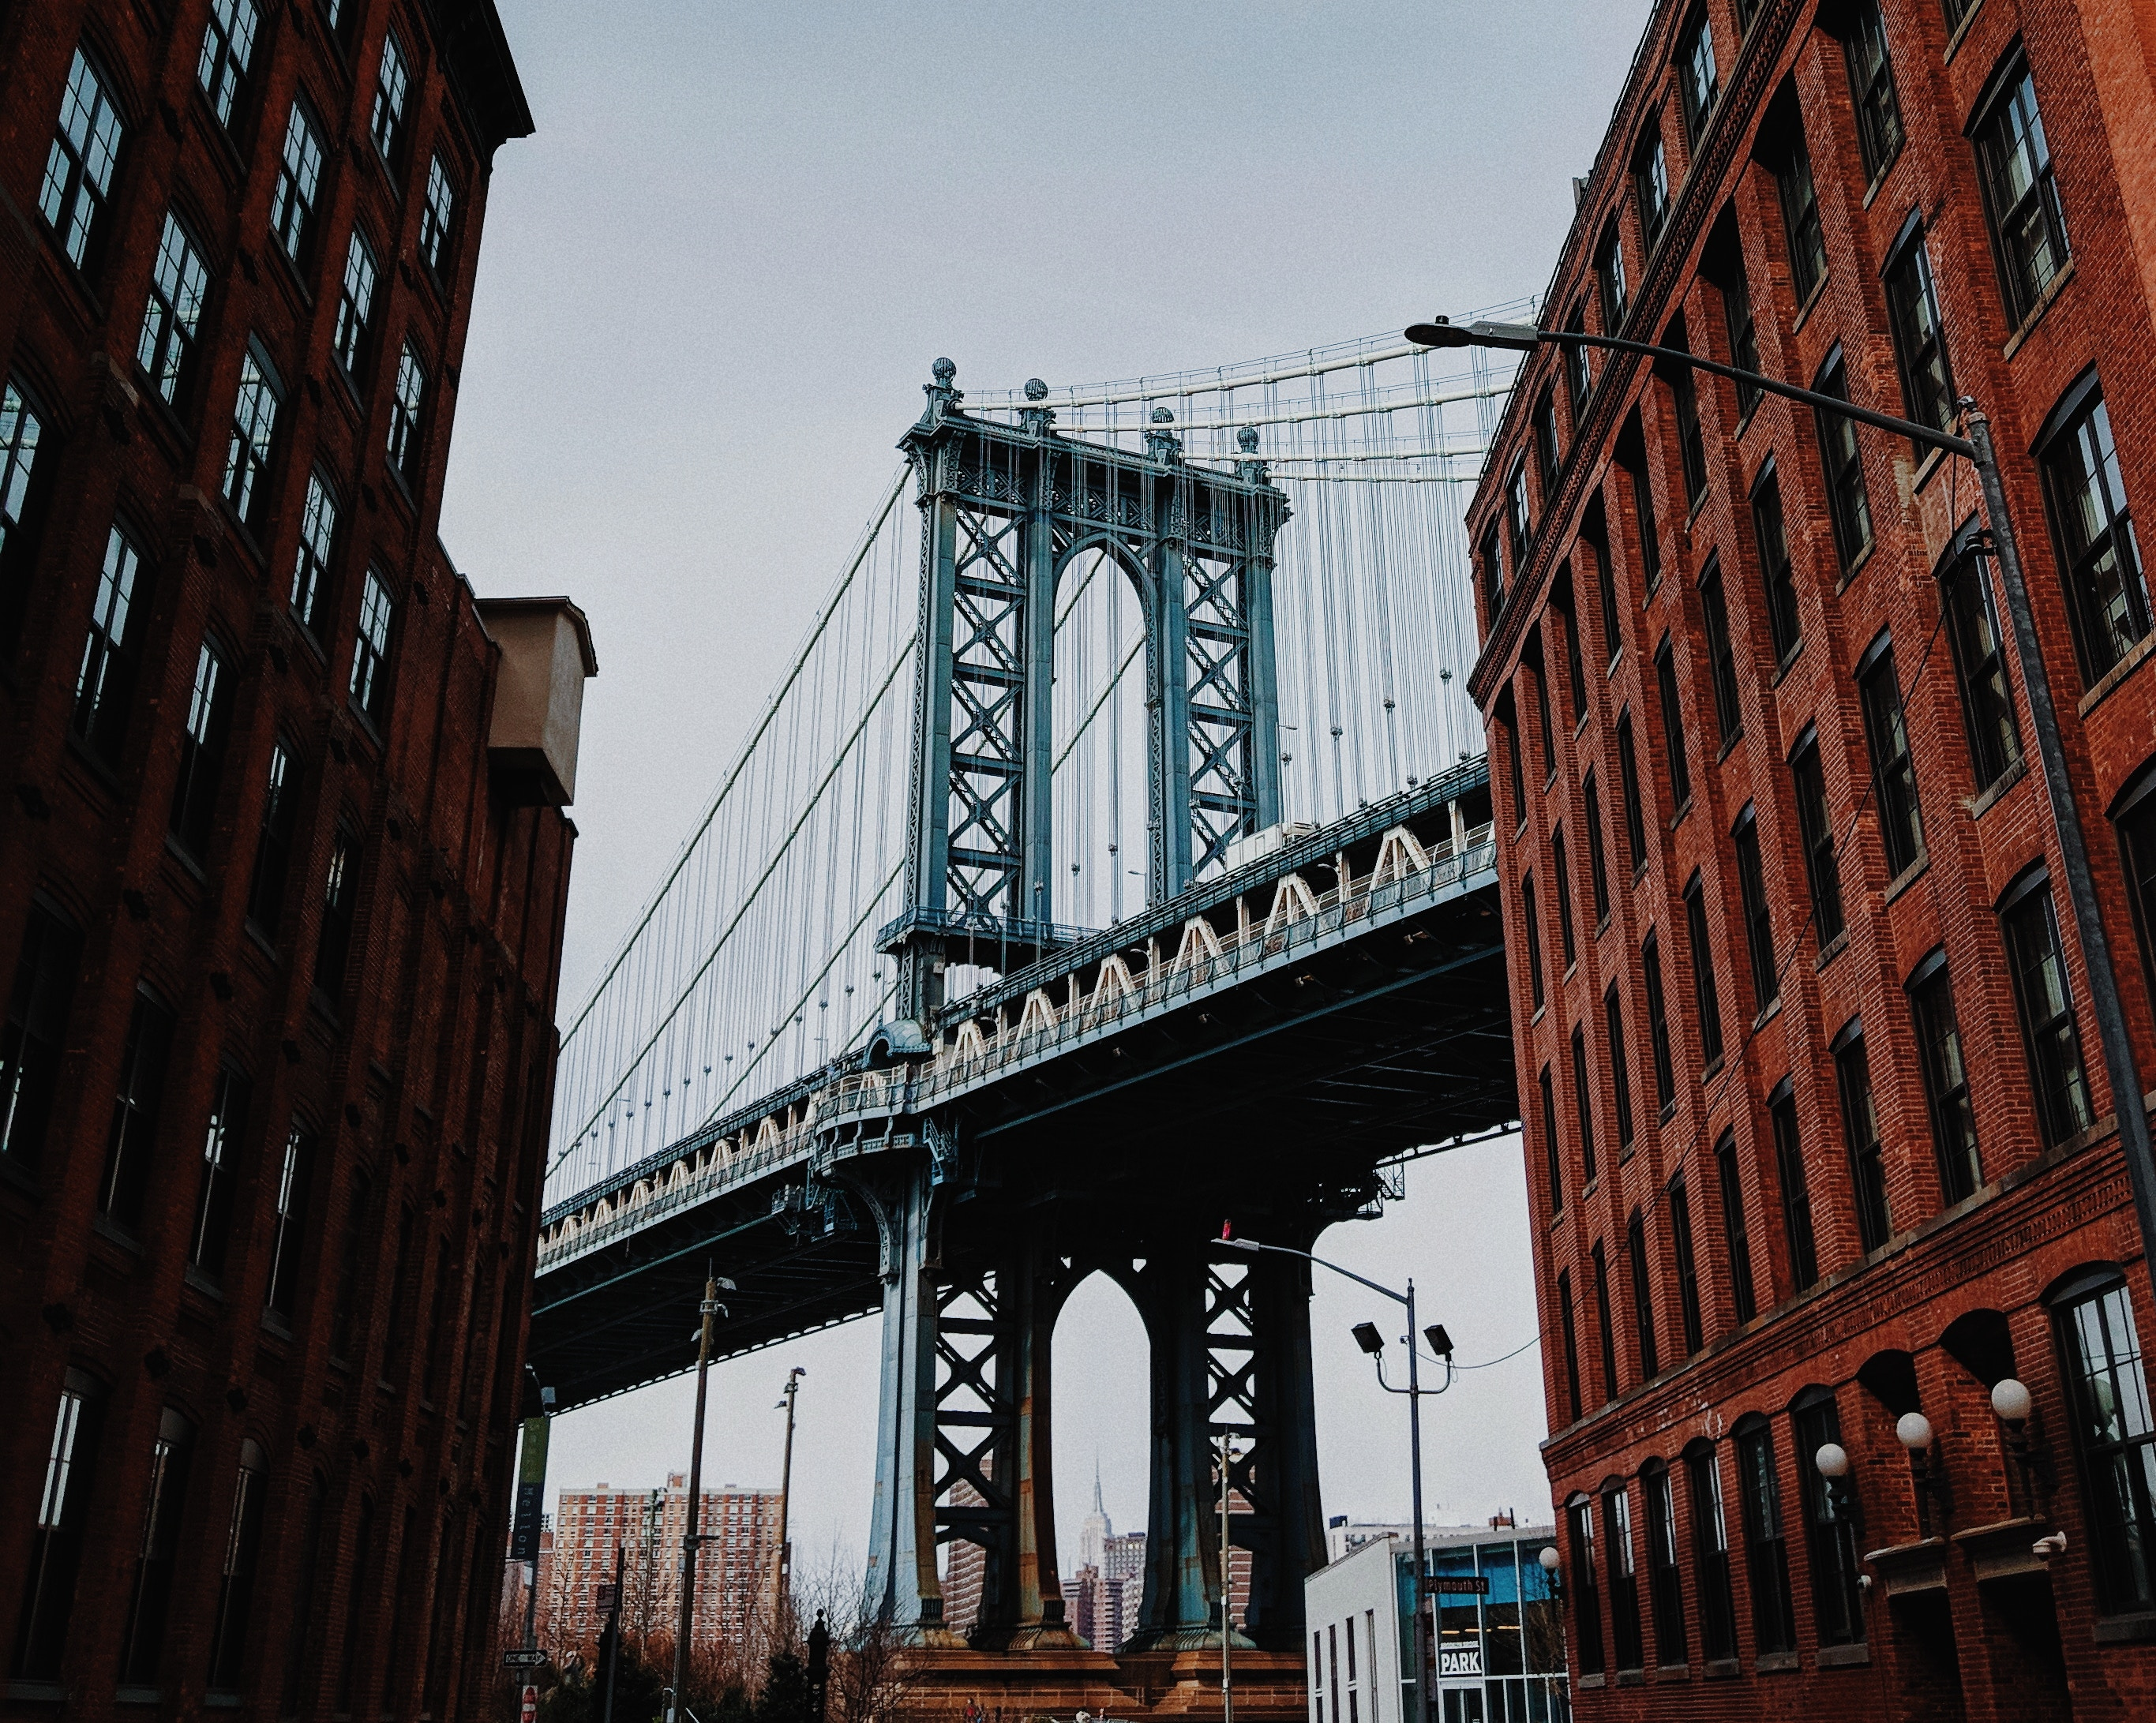 A view of the Brooklyn bridge from the street level.